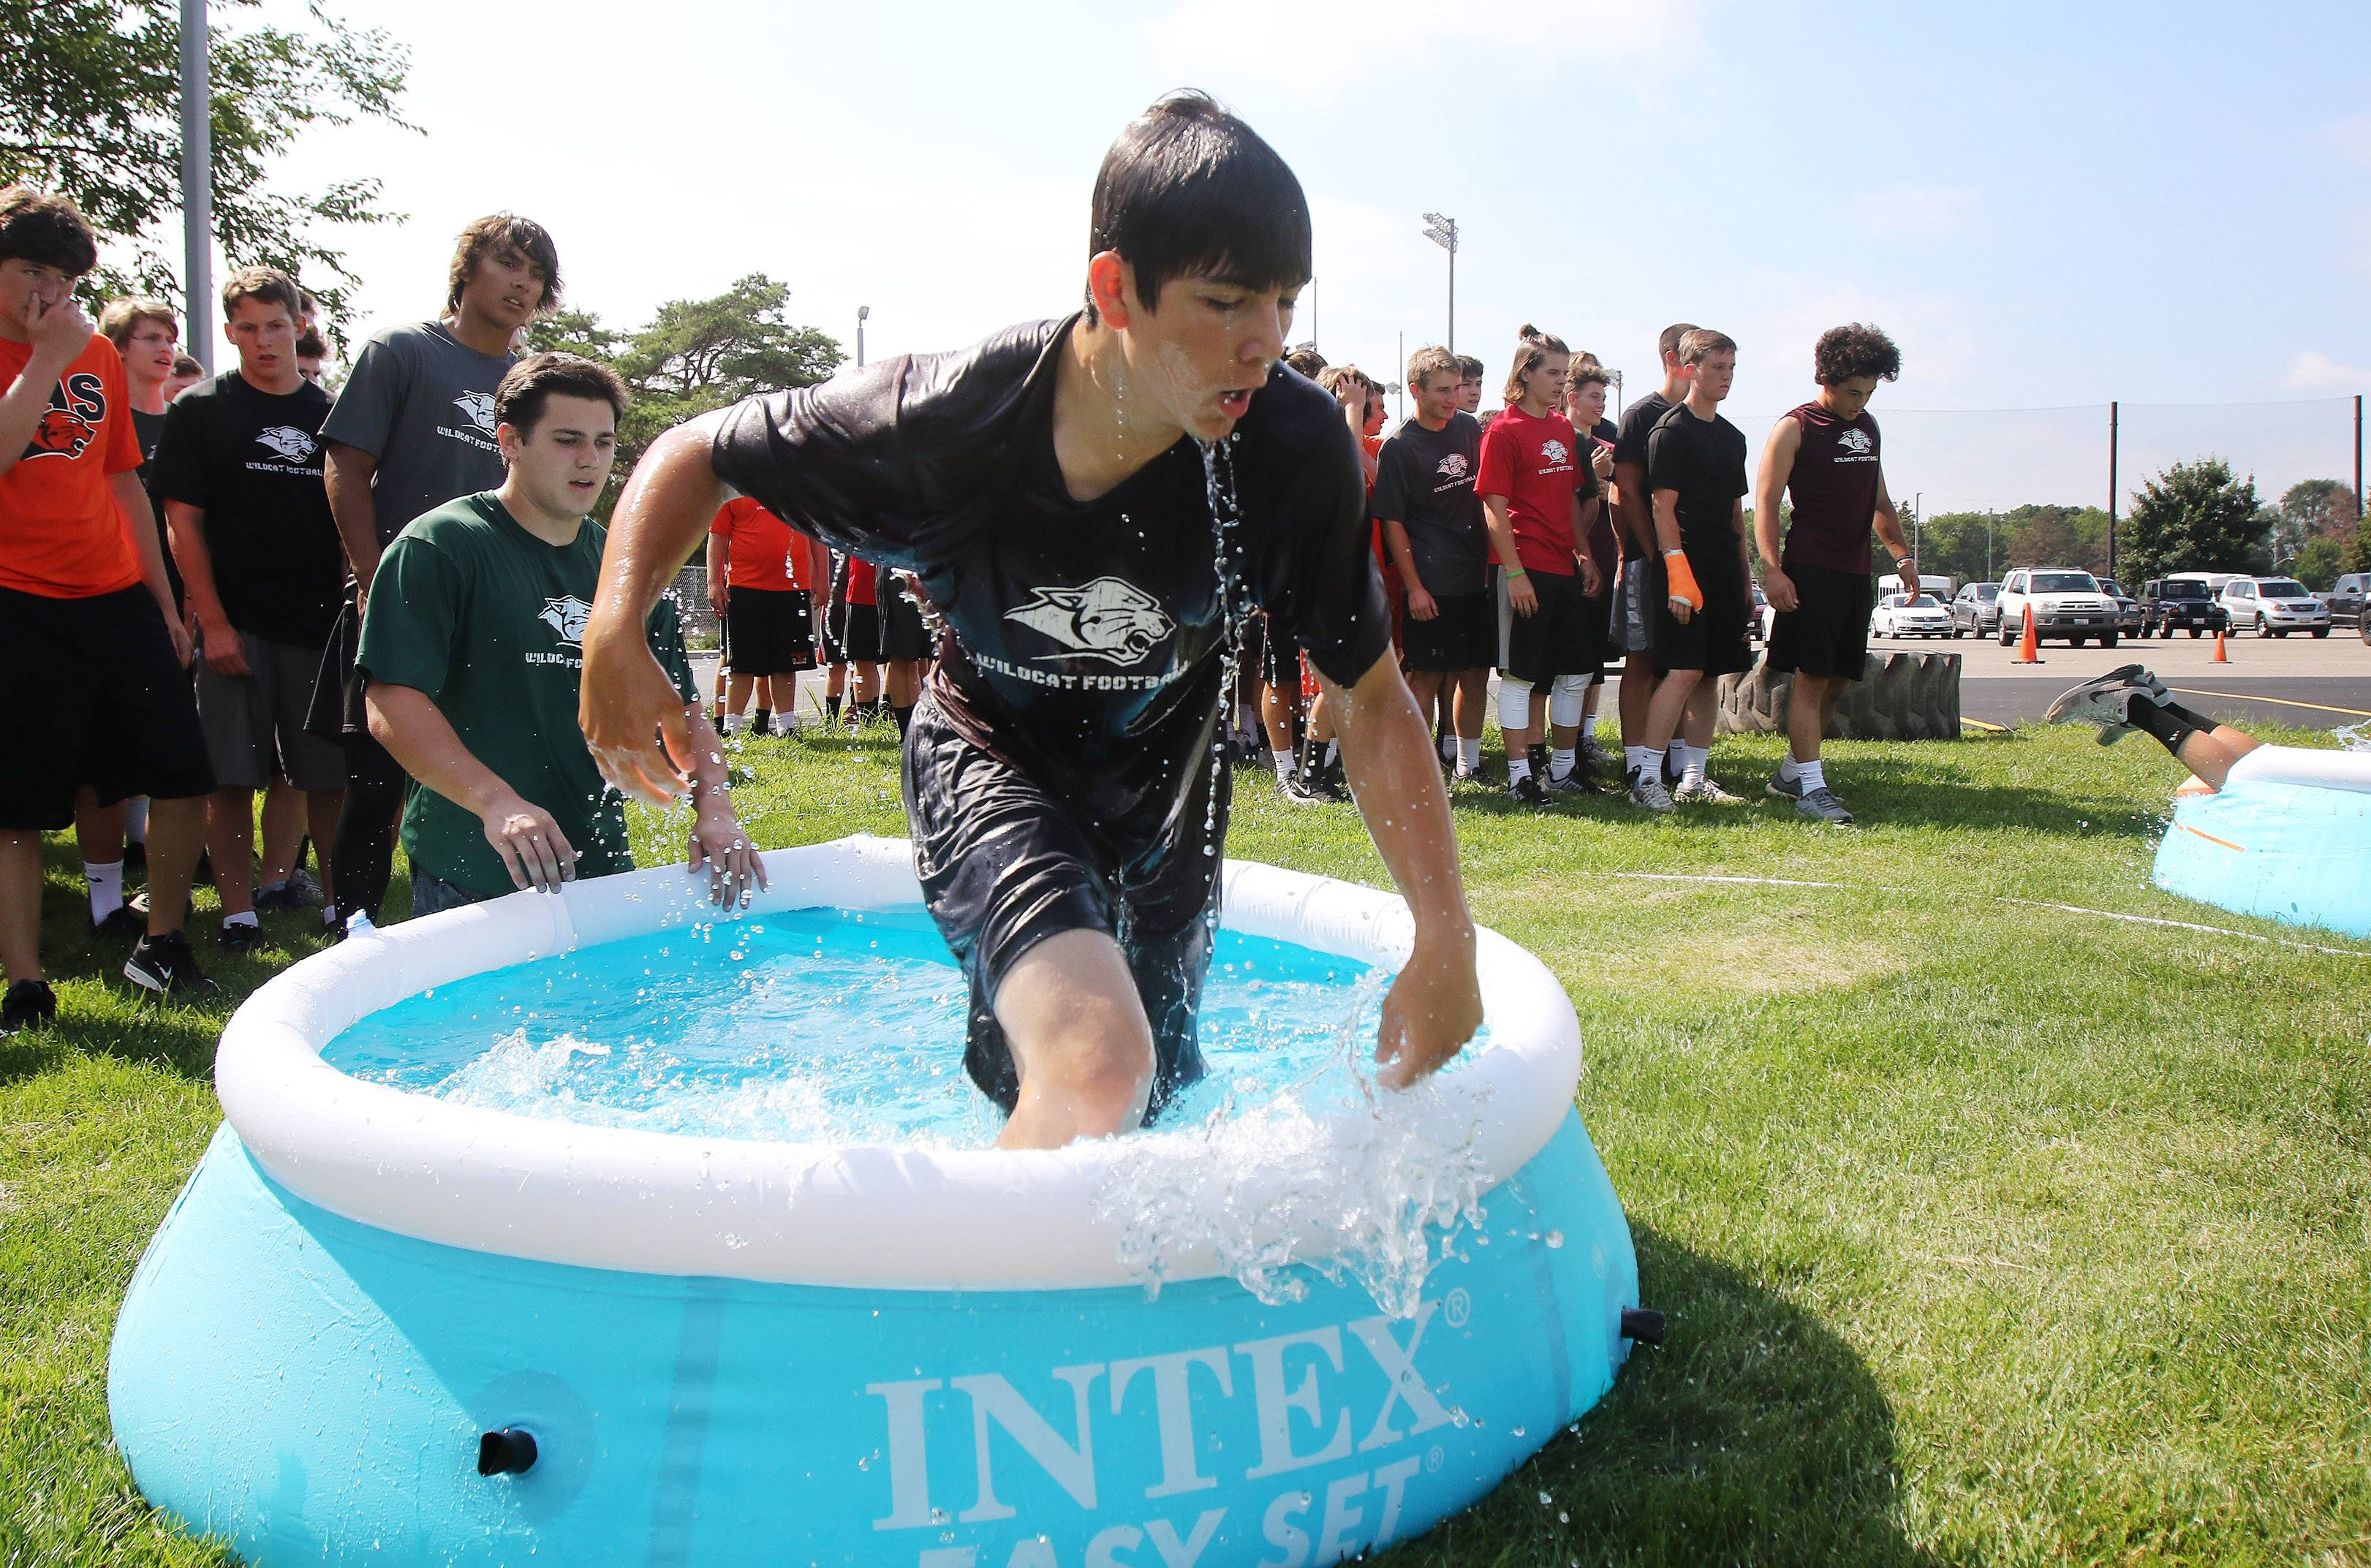 Libertyville High School football player Anthony Vincini comes out of a small swimming pool Wednesday during training led by a pair of retired U.S. Navy SEALs.